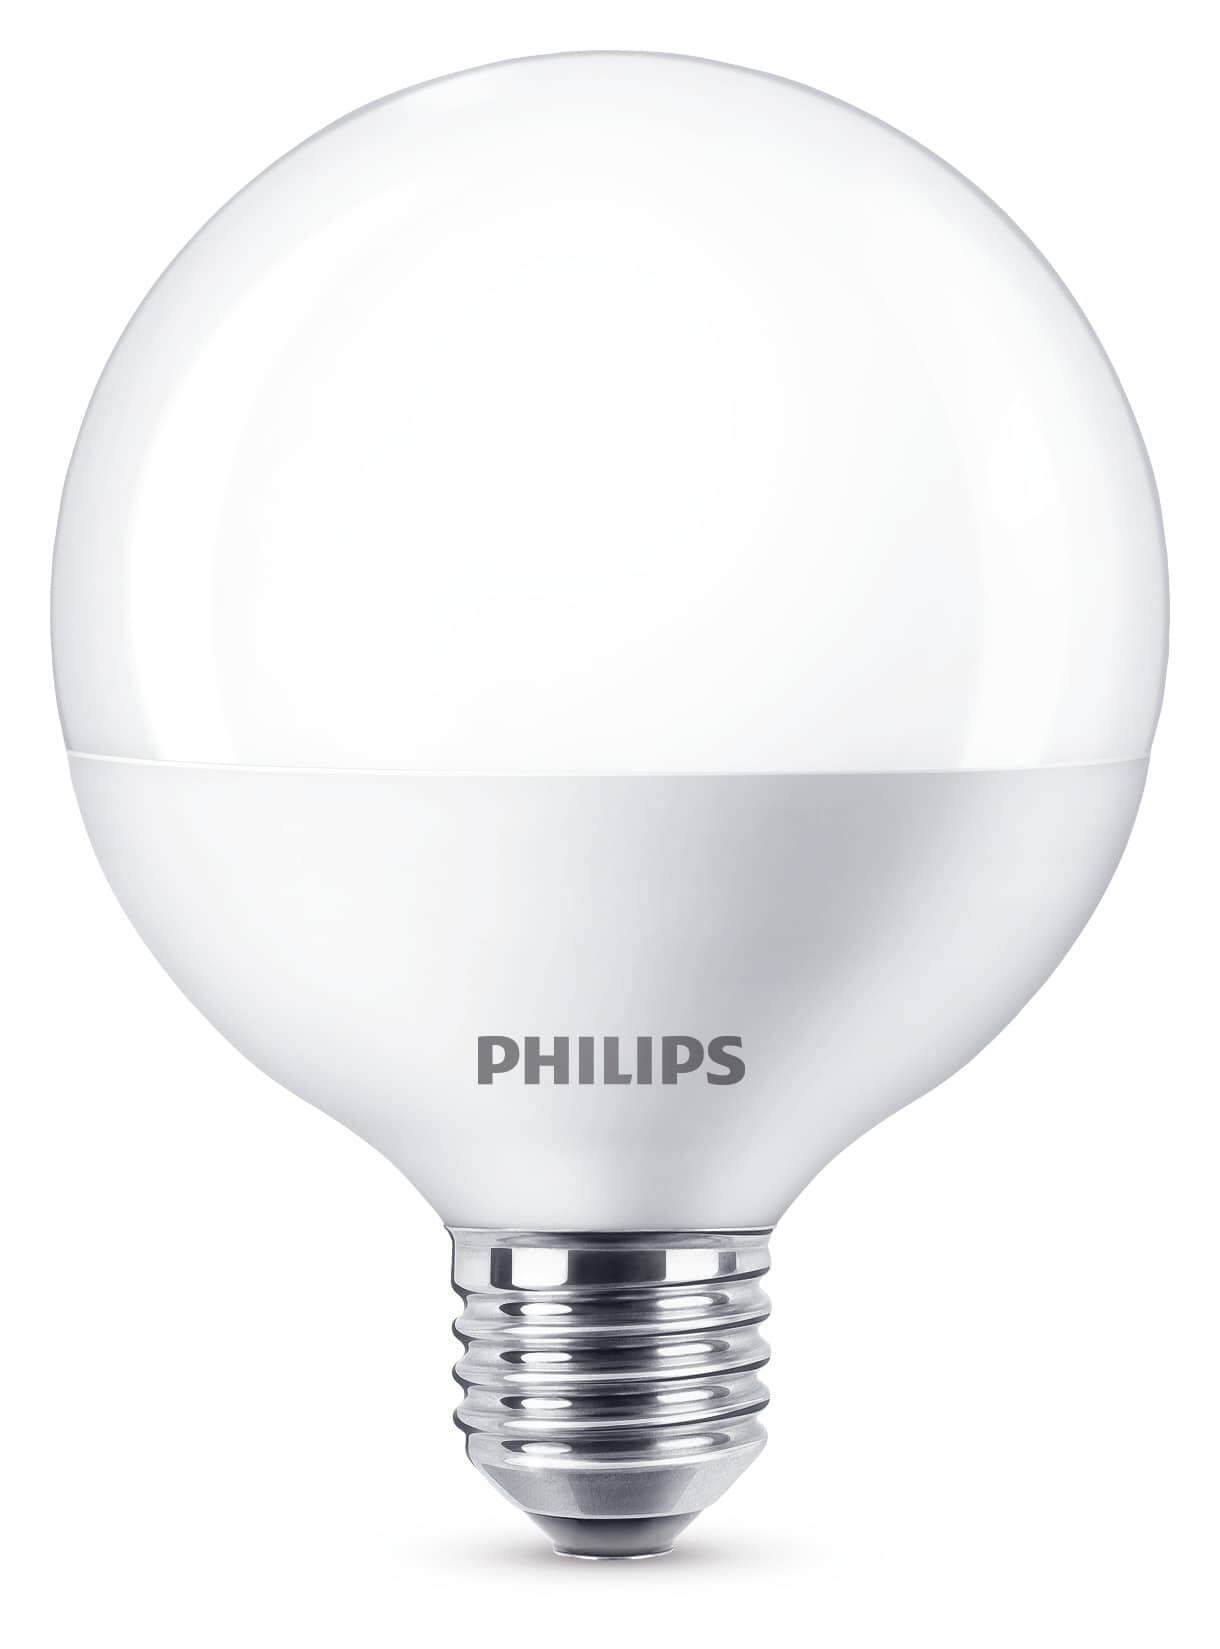 philips e27 led globe filament 16 5w 1521lm warmweiss ebay. Black Bedroom Furniture Sets. Home Design Ideas